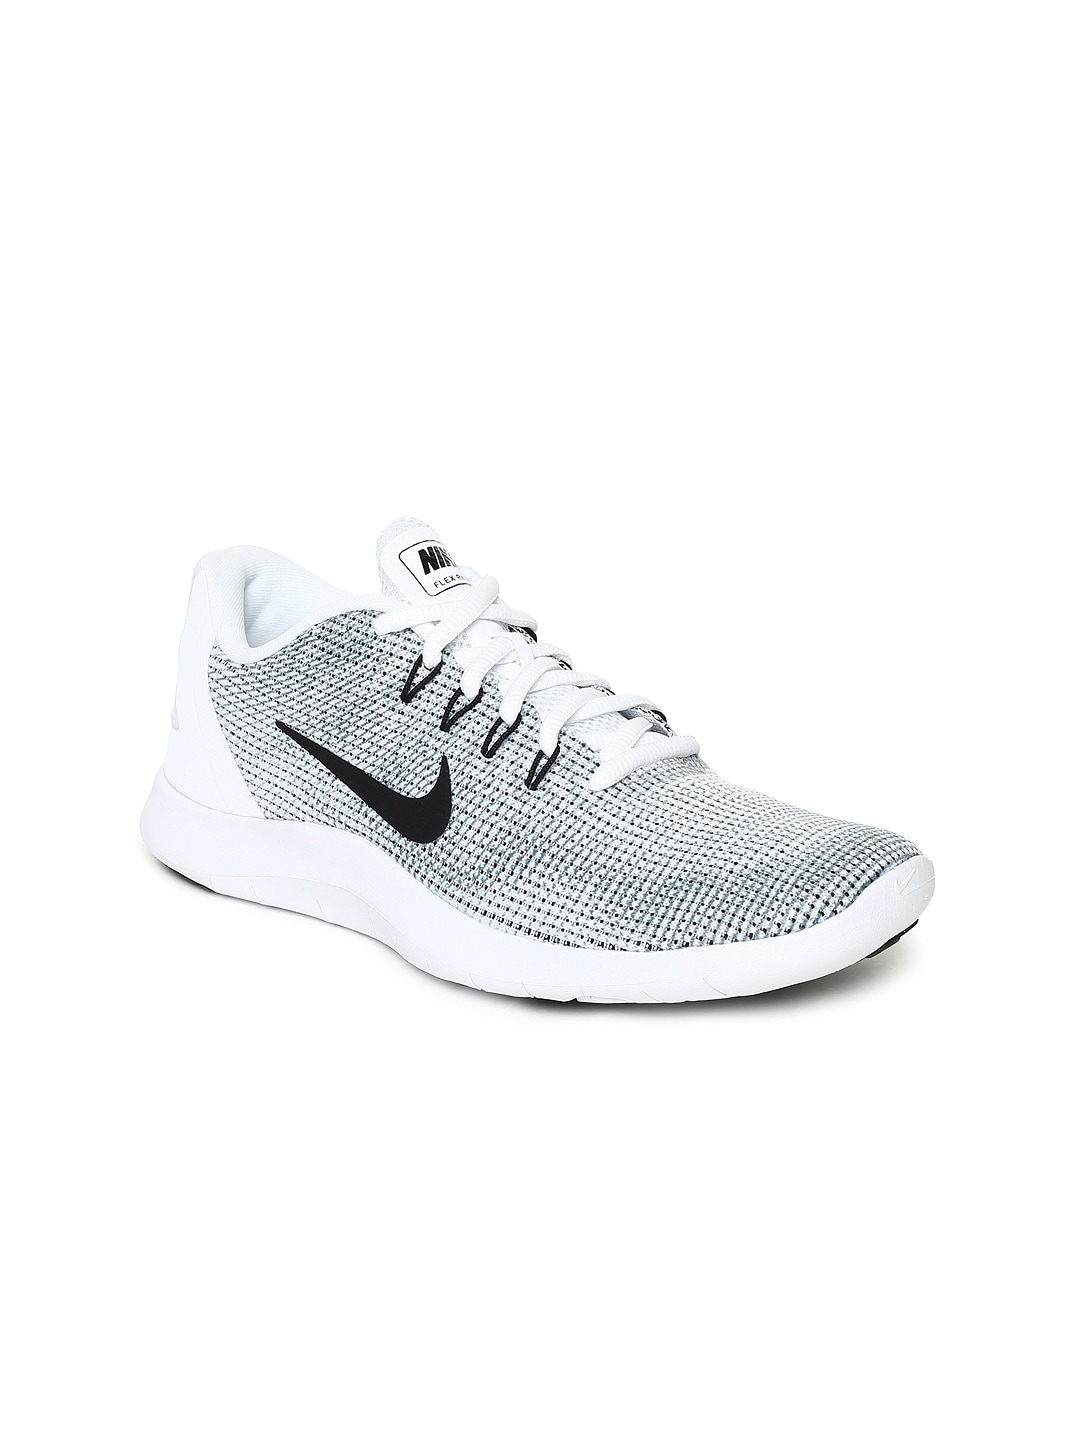 227dc55d626 Nike Running Shoes - Buy Nike Running Shoes Online